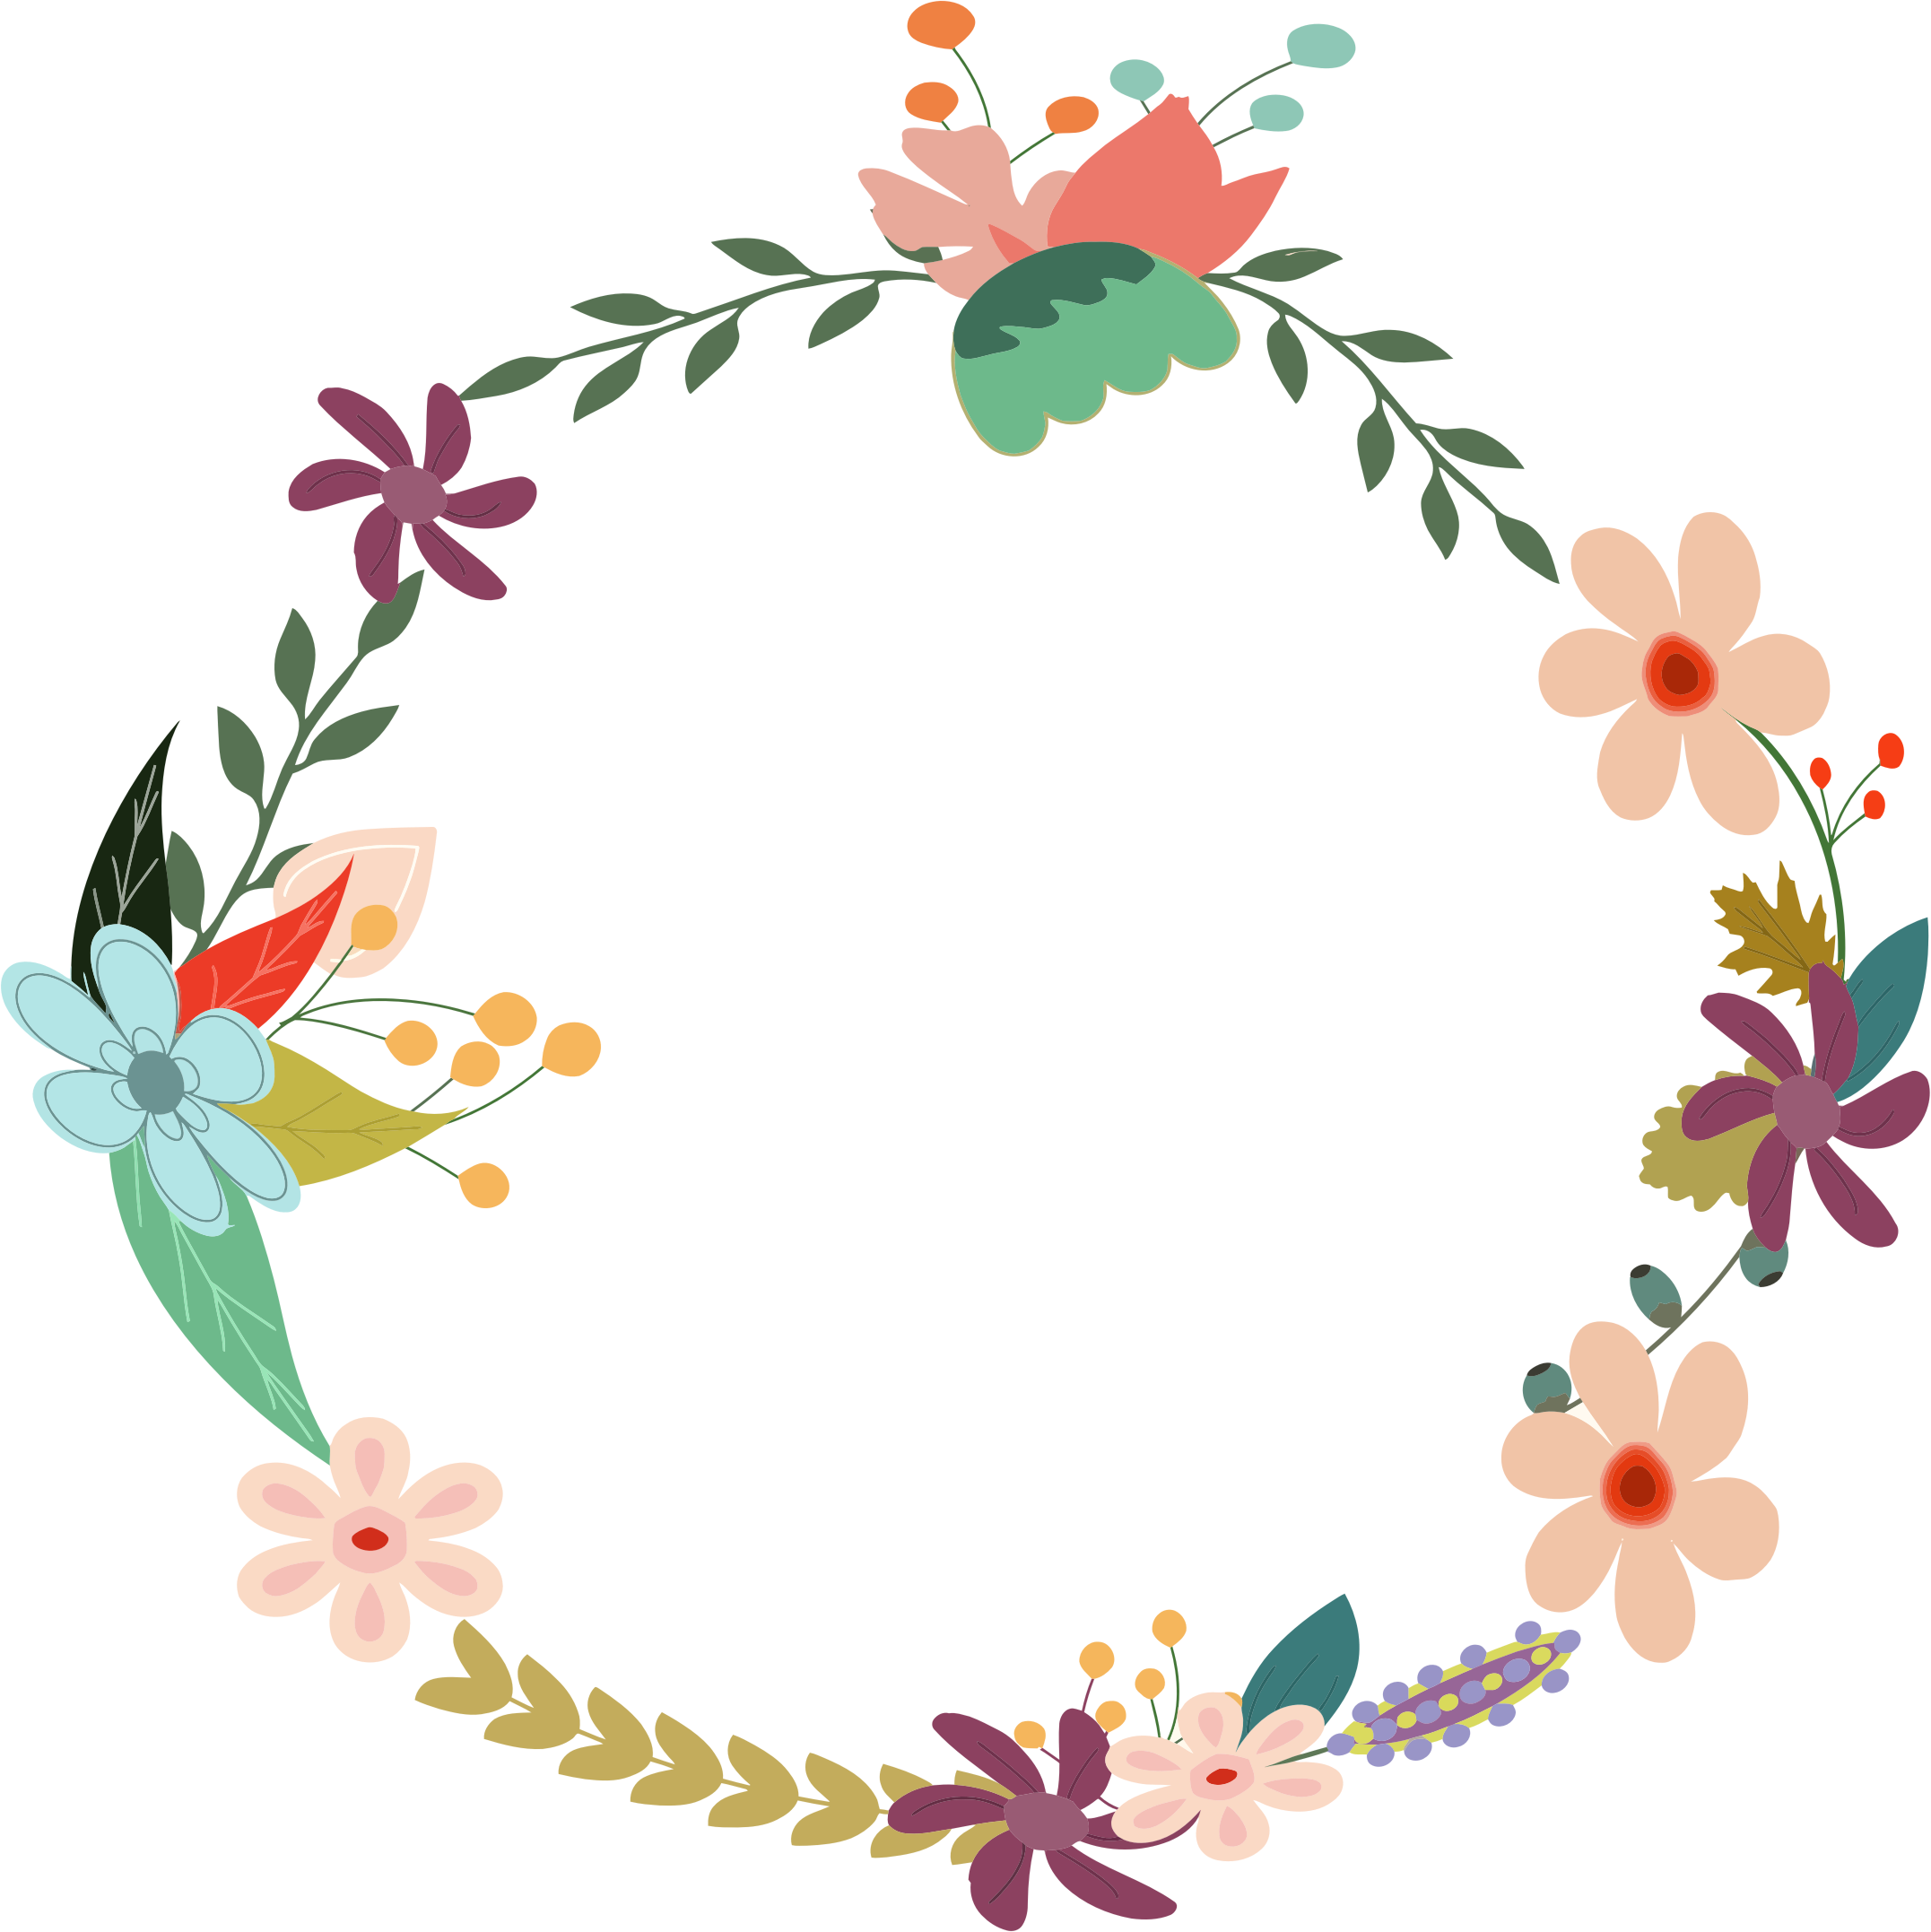 Watercolor wreath flower png. Vintage floral by gdj